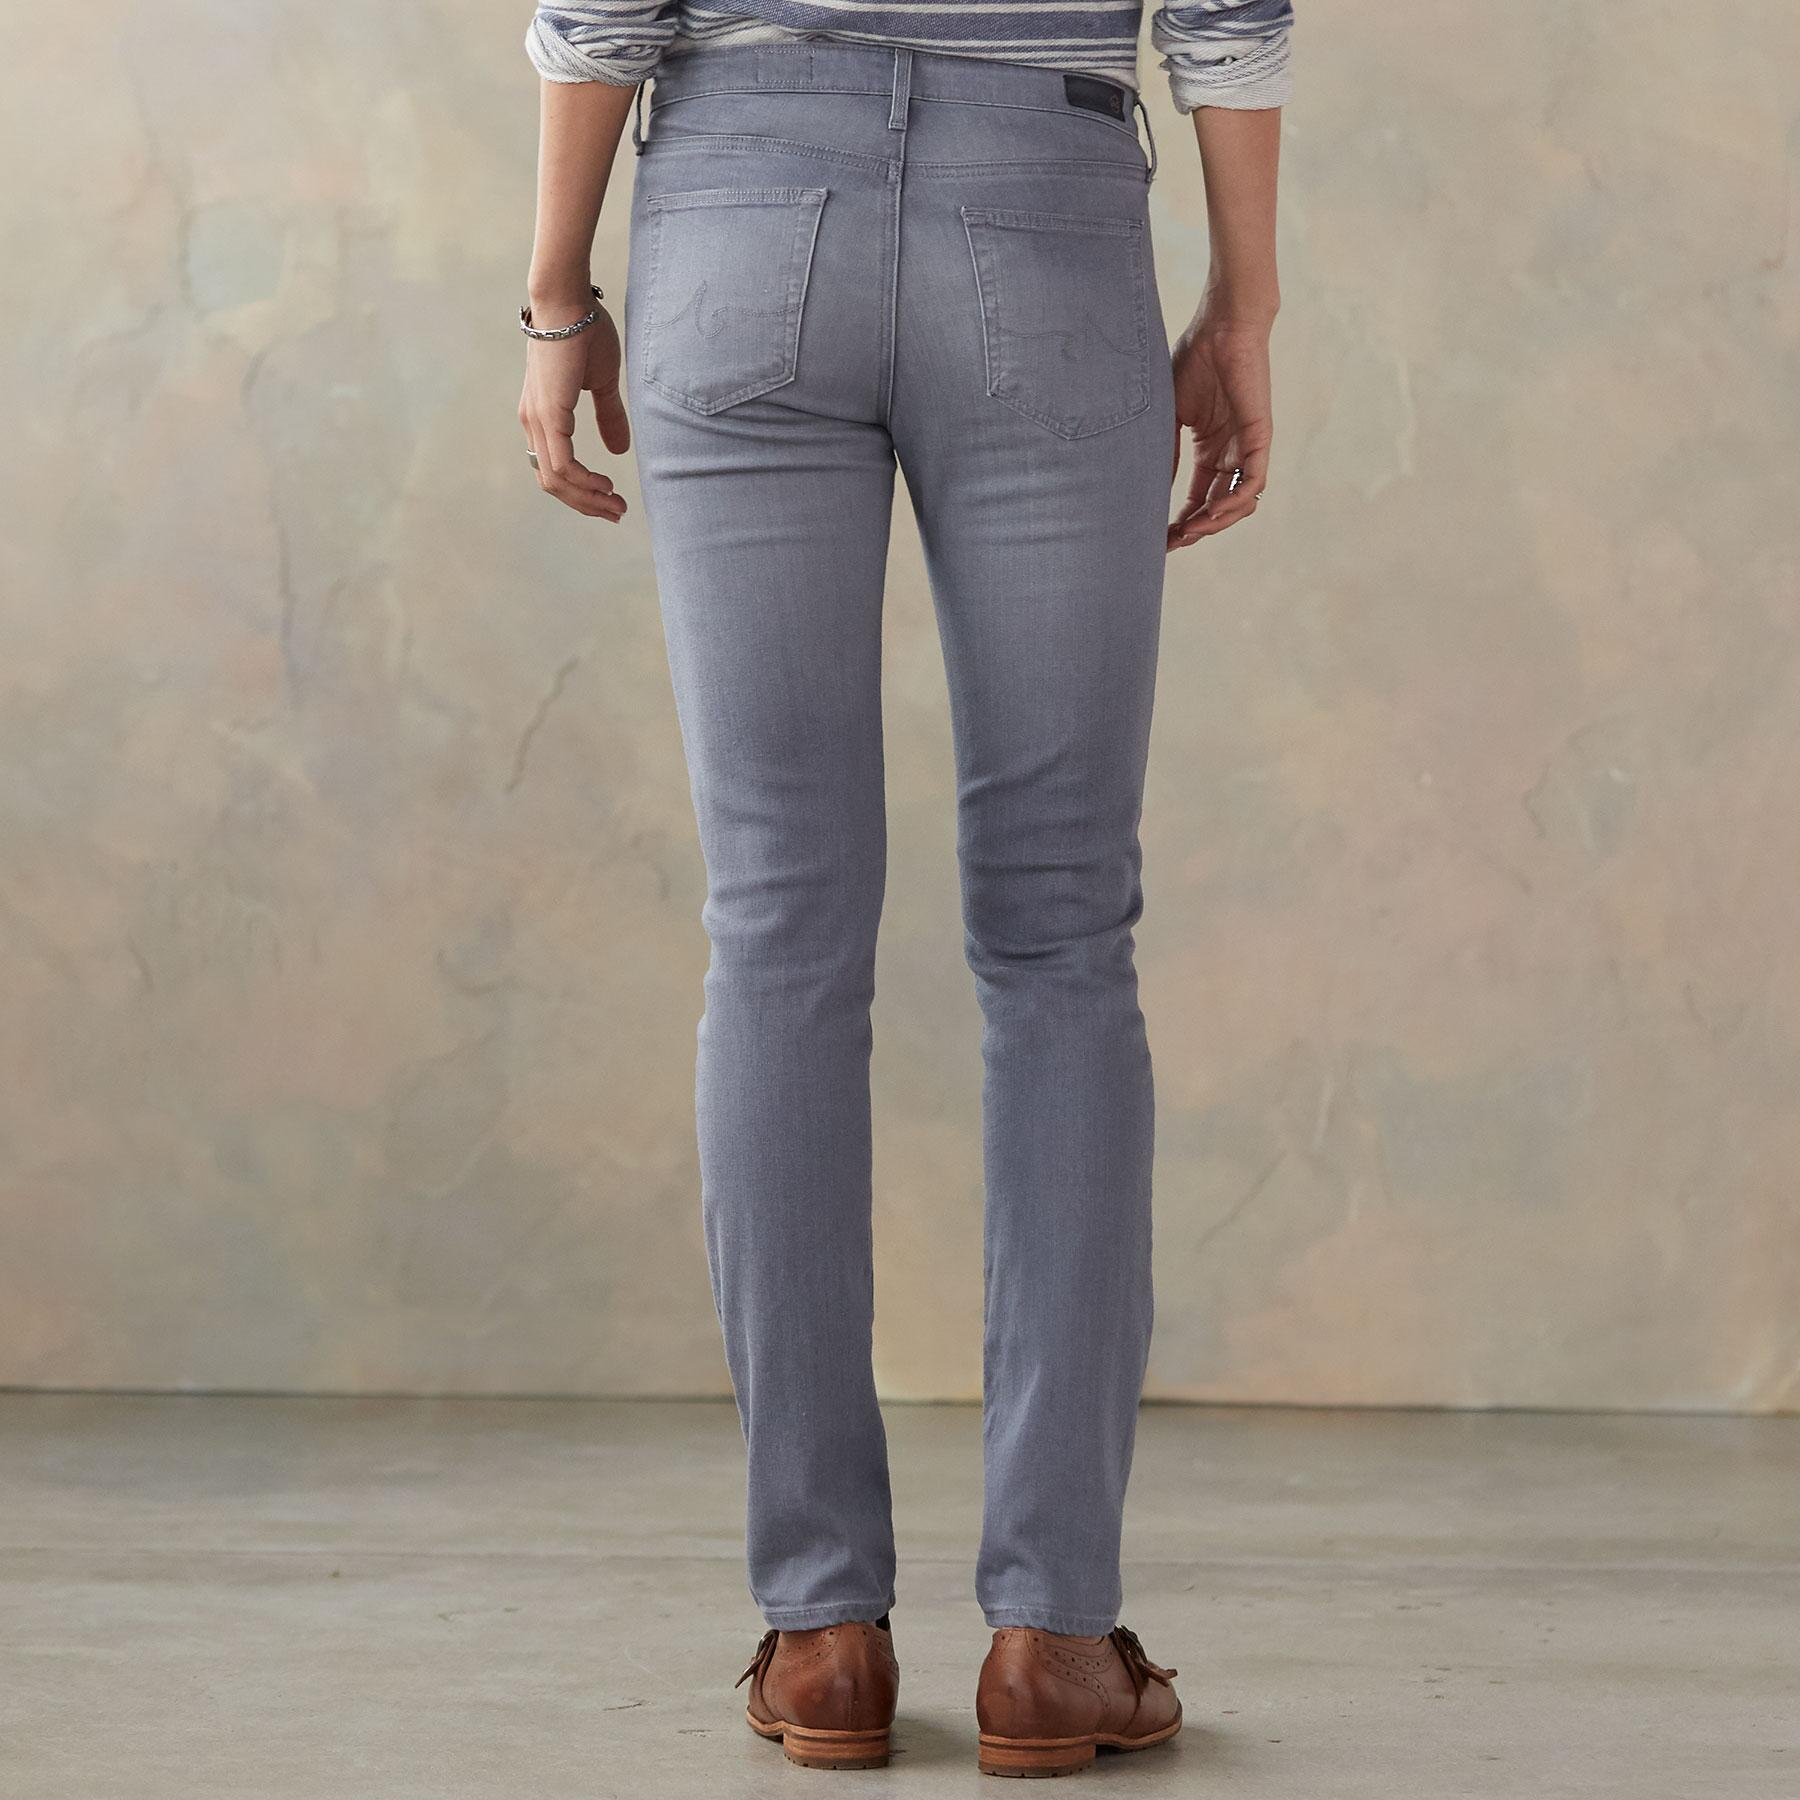 PRIMA VALLEY JEANS: View 2